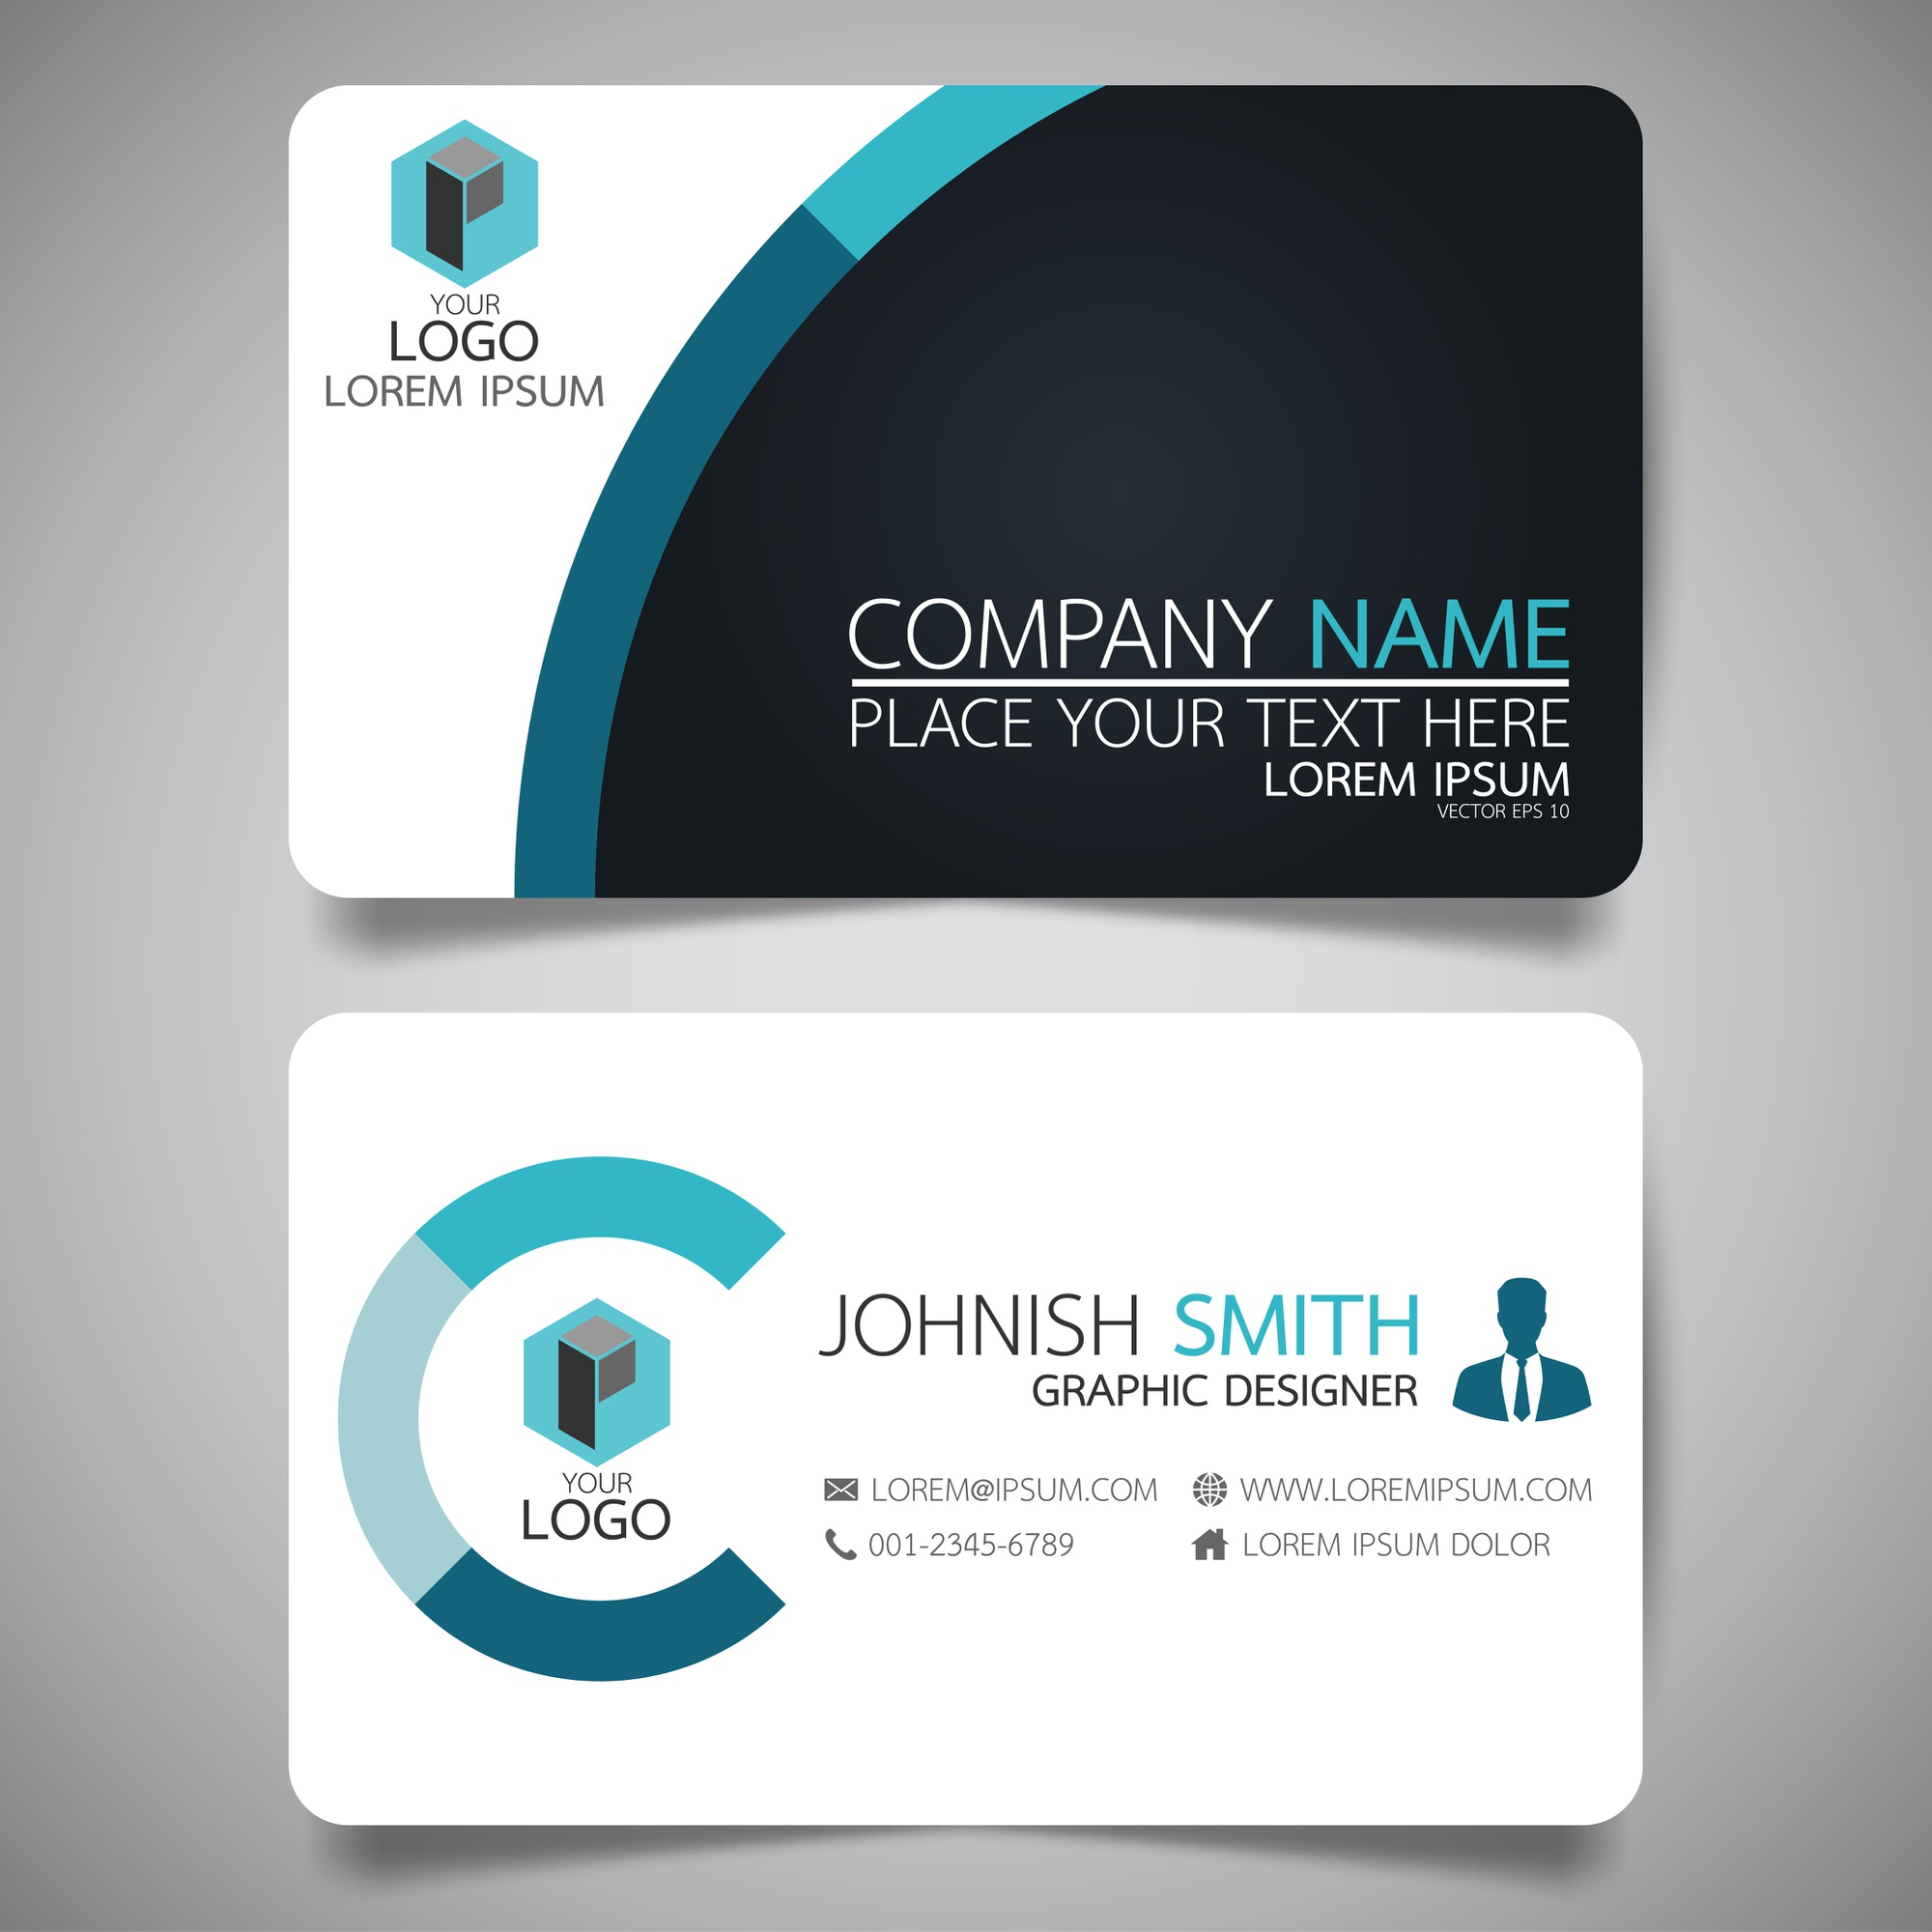 Blue and black layout business card template.